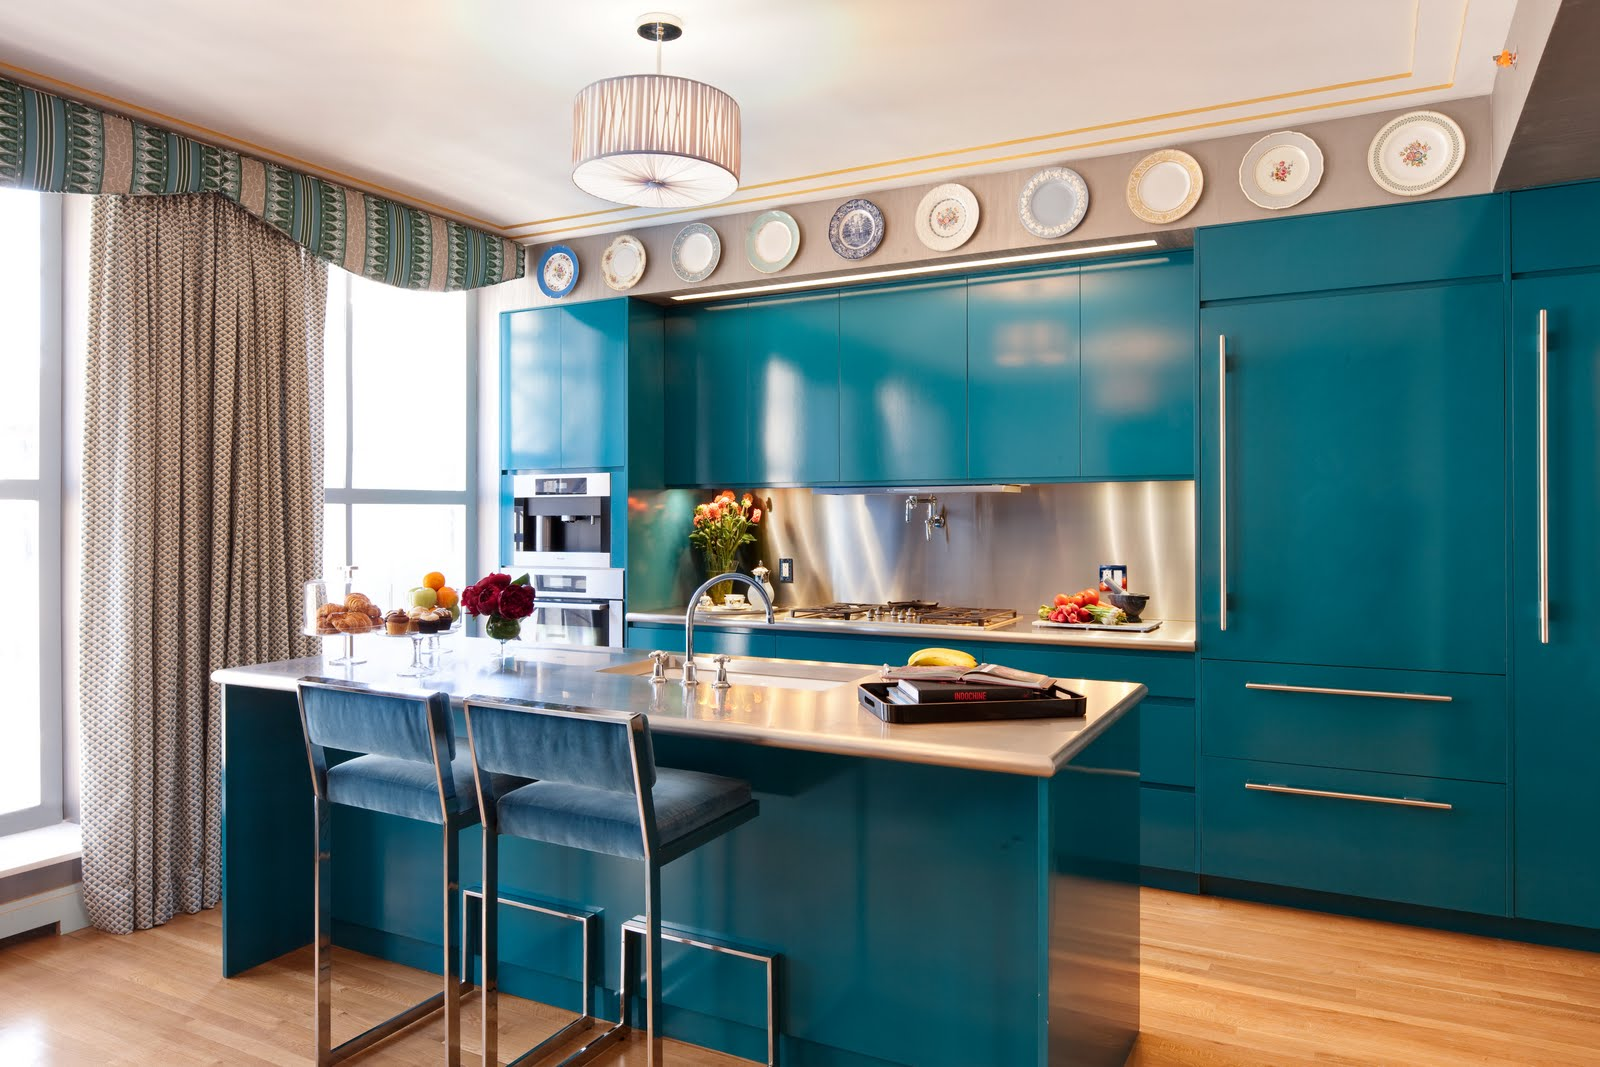 Kitchen Cabinets Colors Should Kitchen Cabinets Match The Hardwood Floors